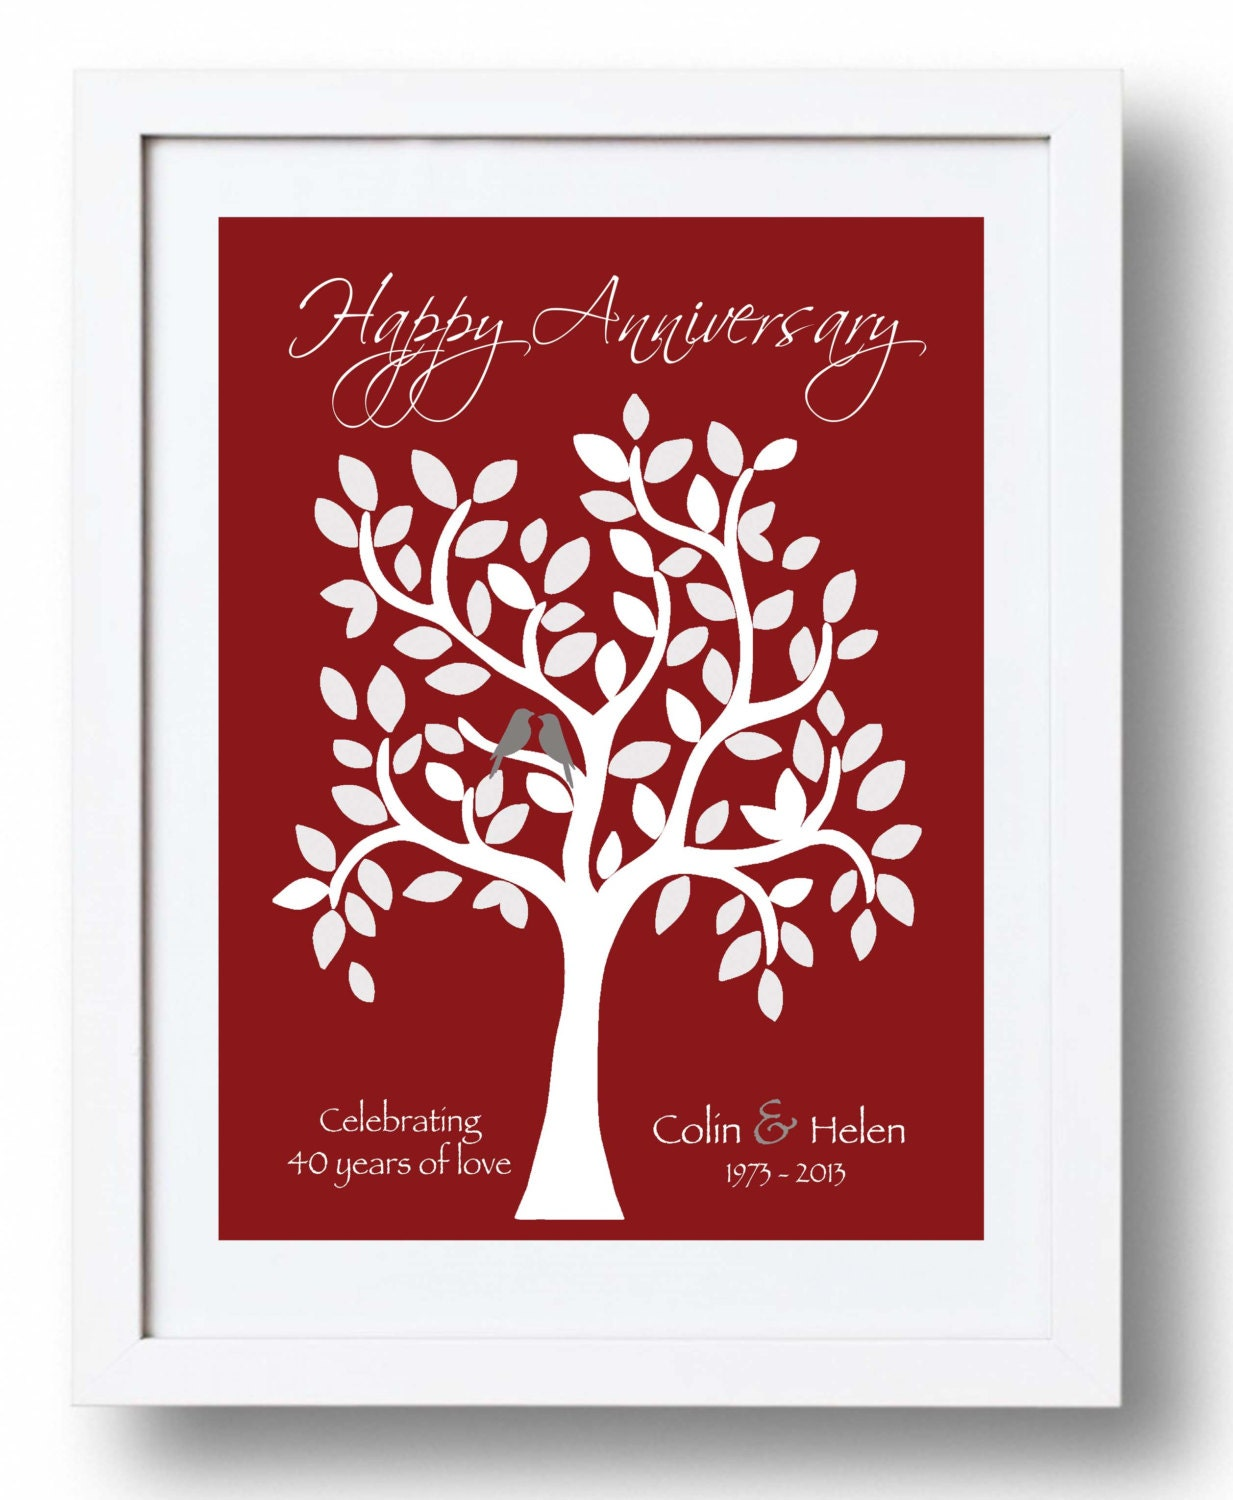 What Gift For 40th Wedding Anniversary: 40th Anniversary Gift For Parents 40th Ruby Anniversary